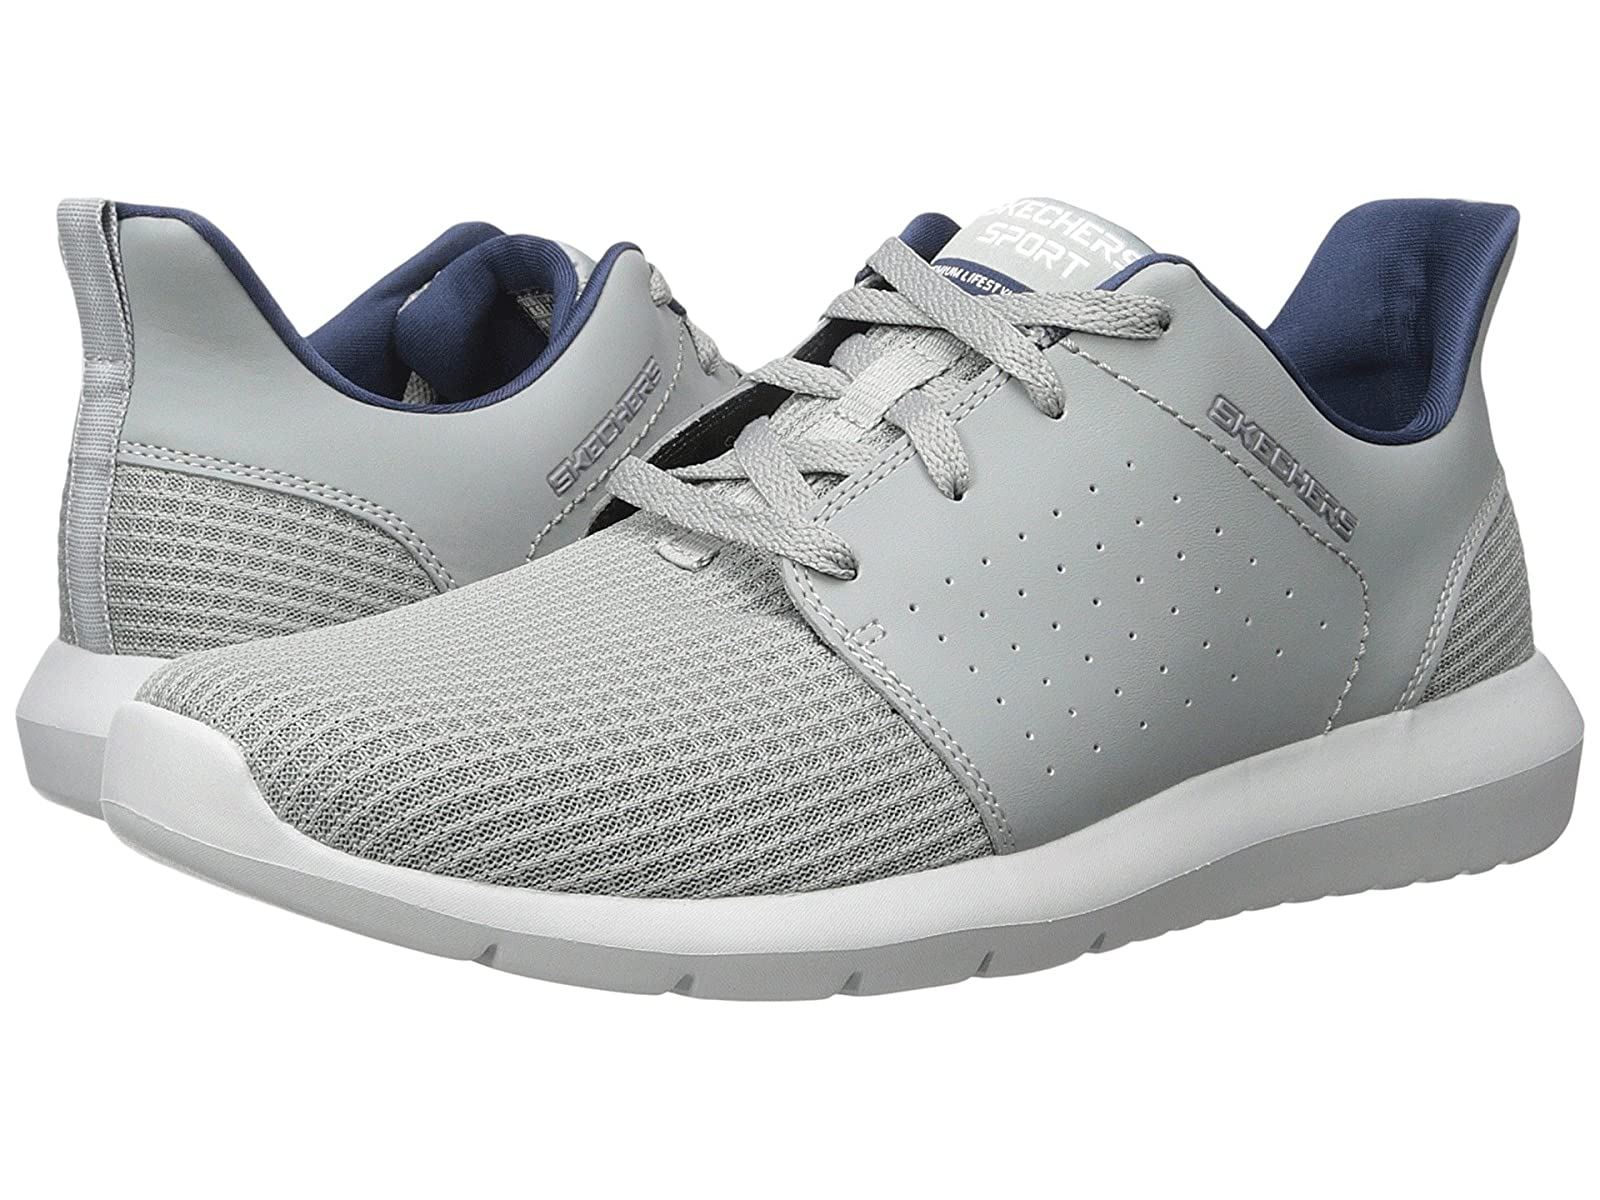 SKECHERS ForeflexCheap and distinctive eye-catching shoes